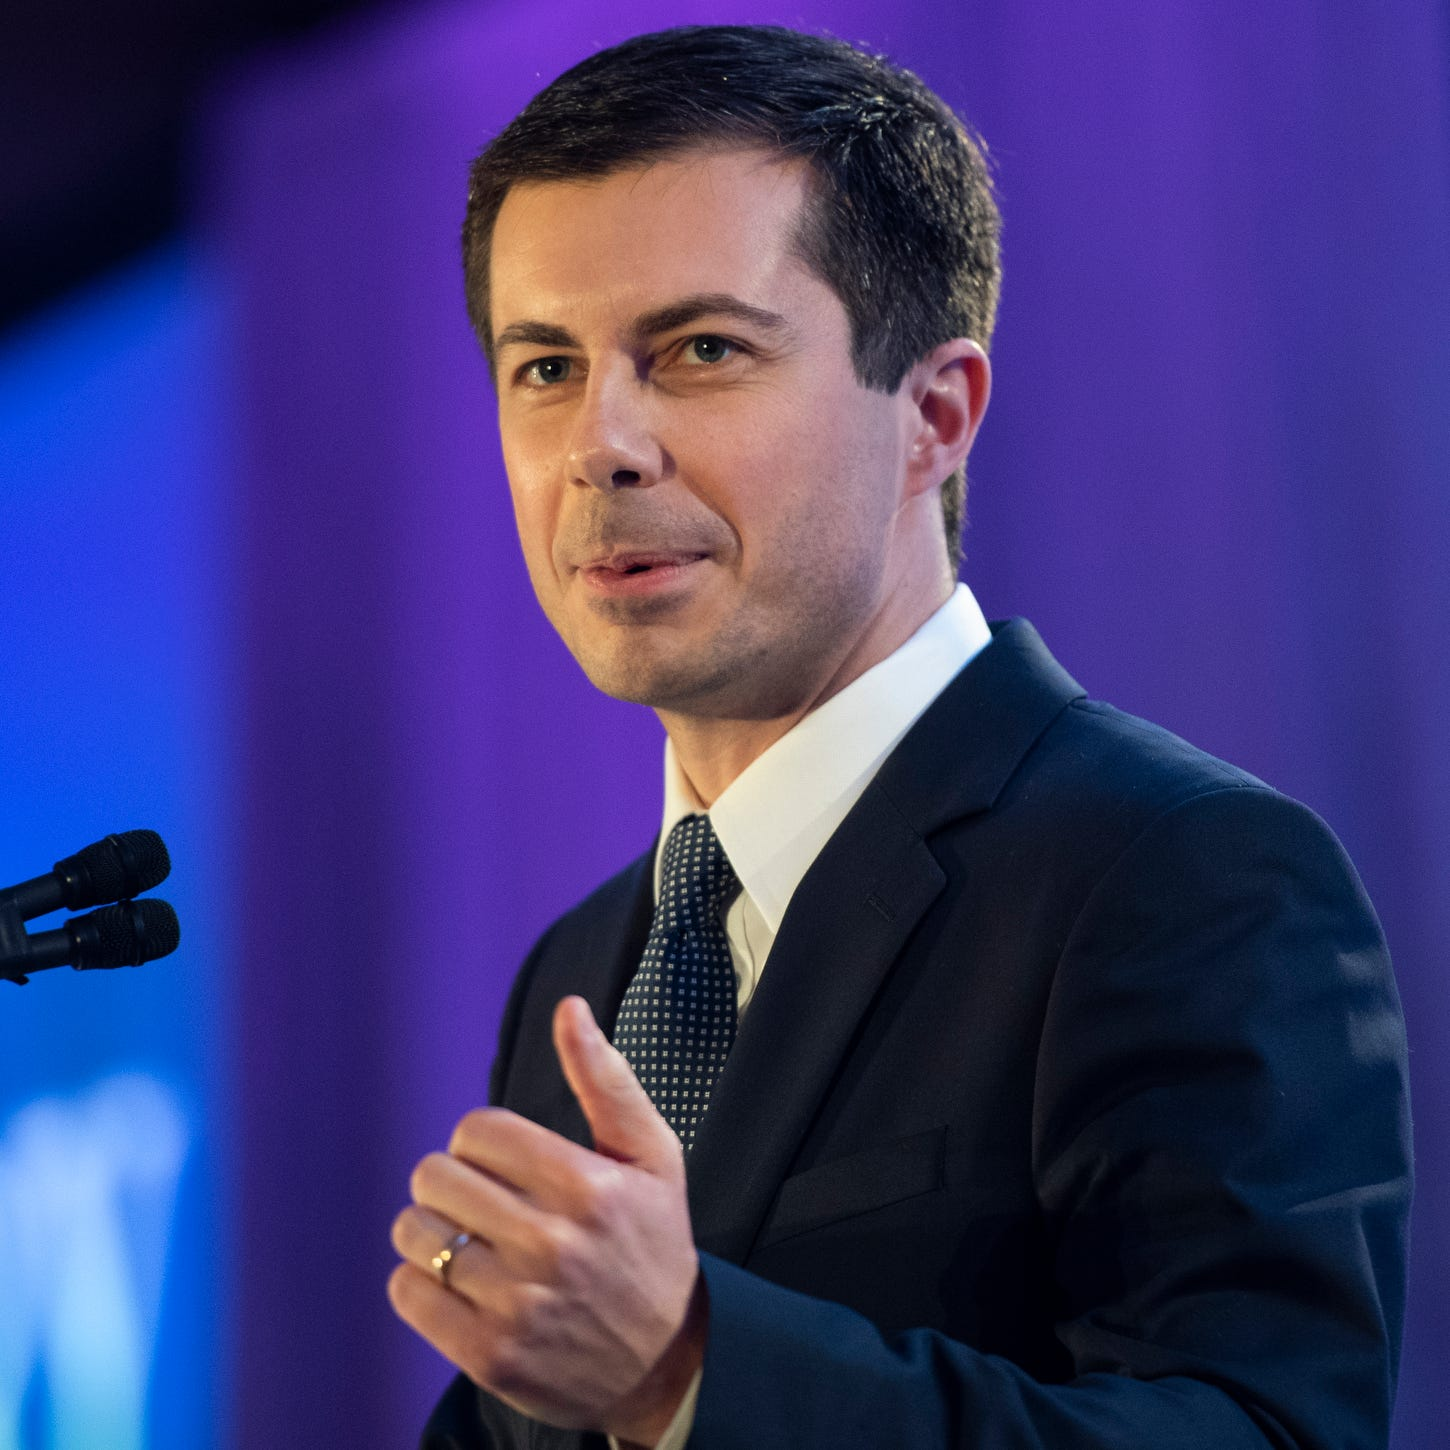 Democratic presidential candidate Pete Buttigieg speaks at the LGBTQ Victory Fund National Champagne Brunch on April 7, 2019 in Washington.